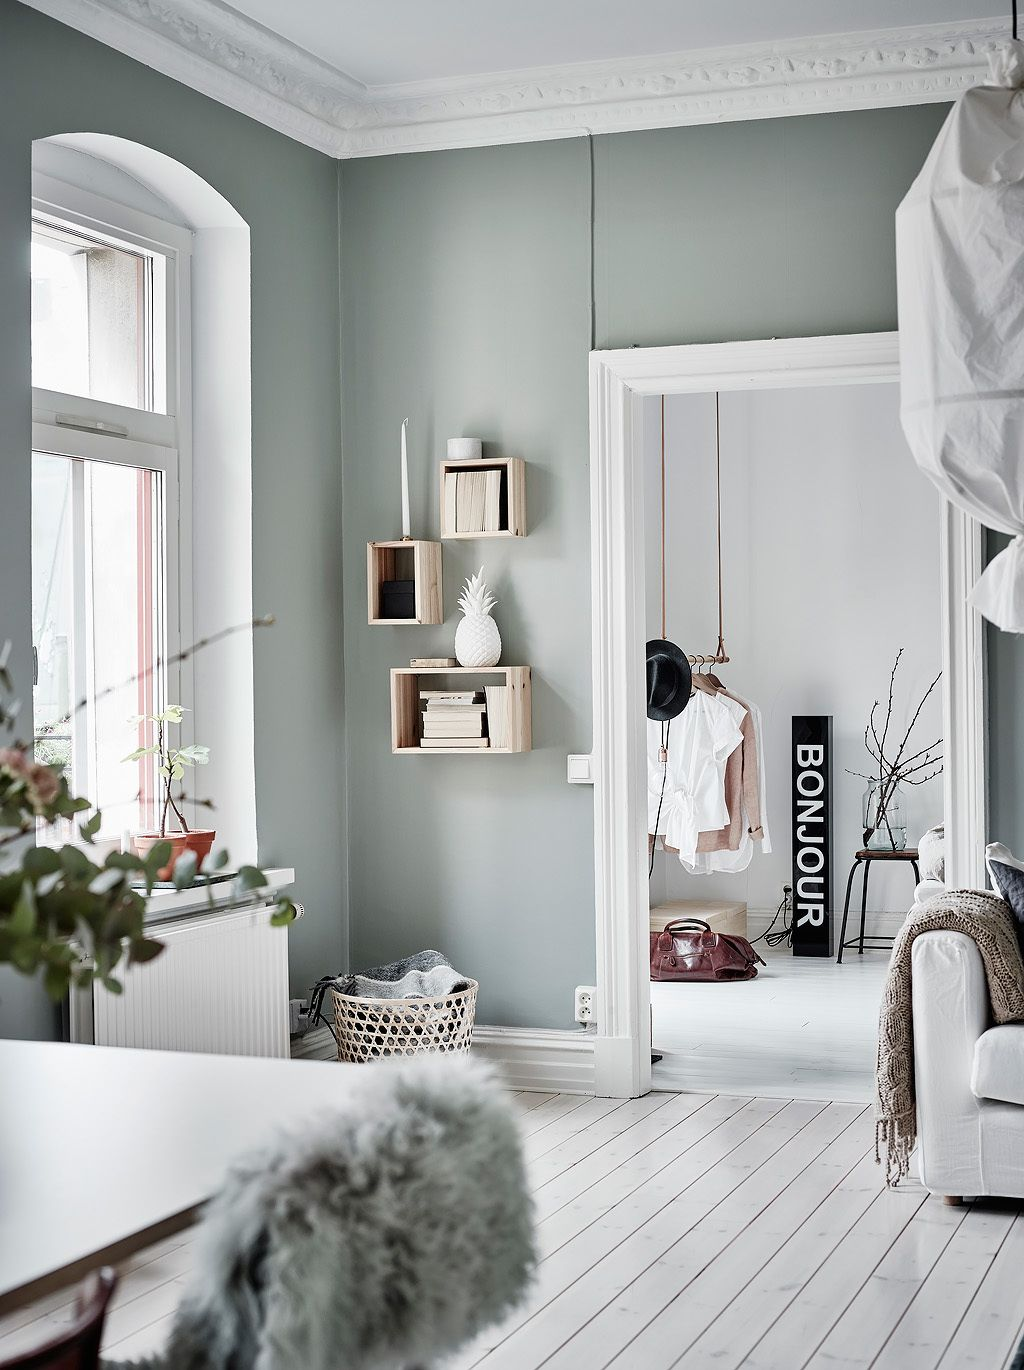 Wandfarbe Grün Schlafzimmer Green Grey Home With Character Room Ideas Schlafzimmer